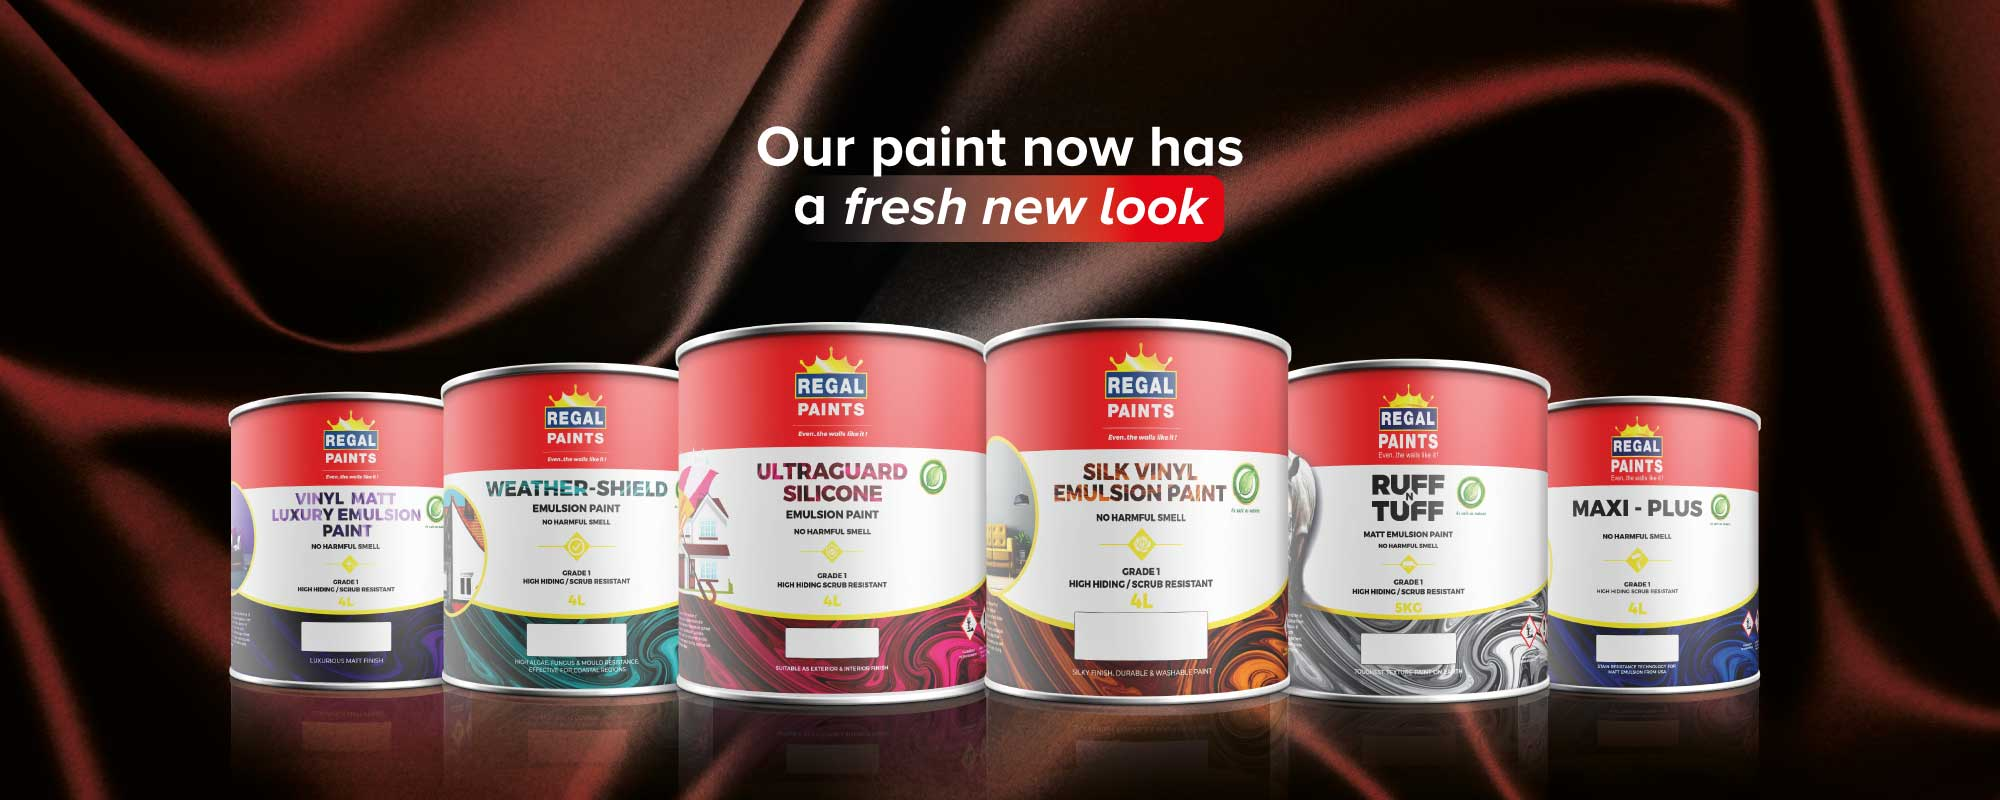 Regal Premium paints